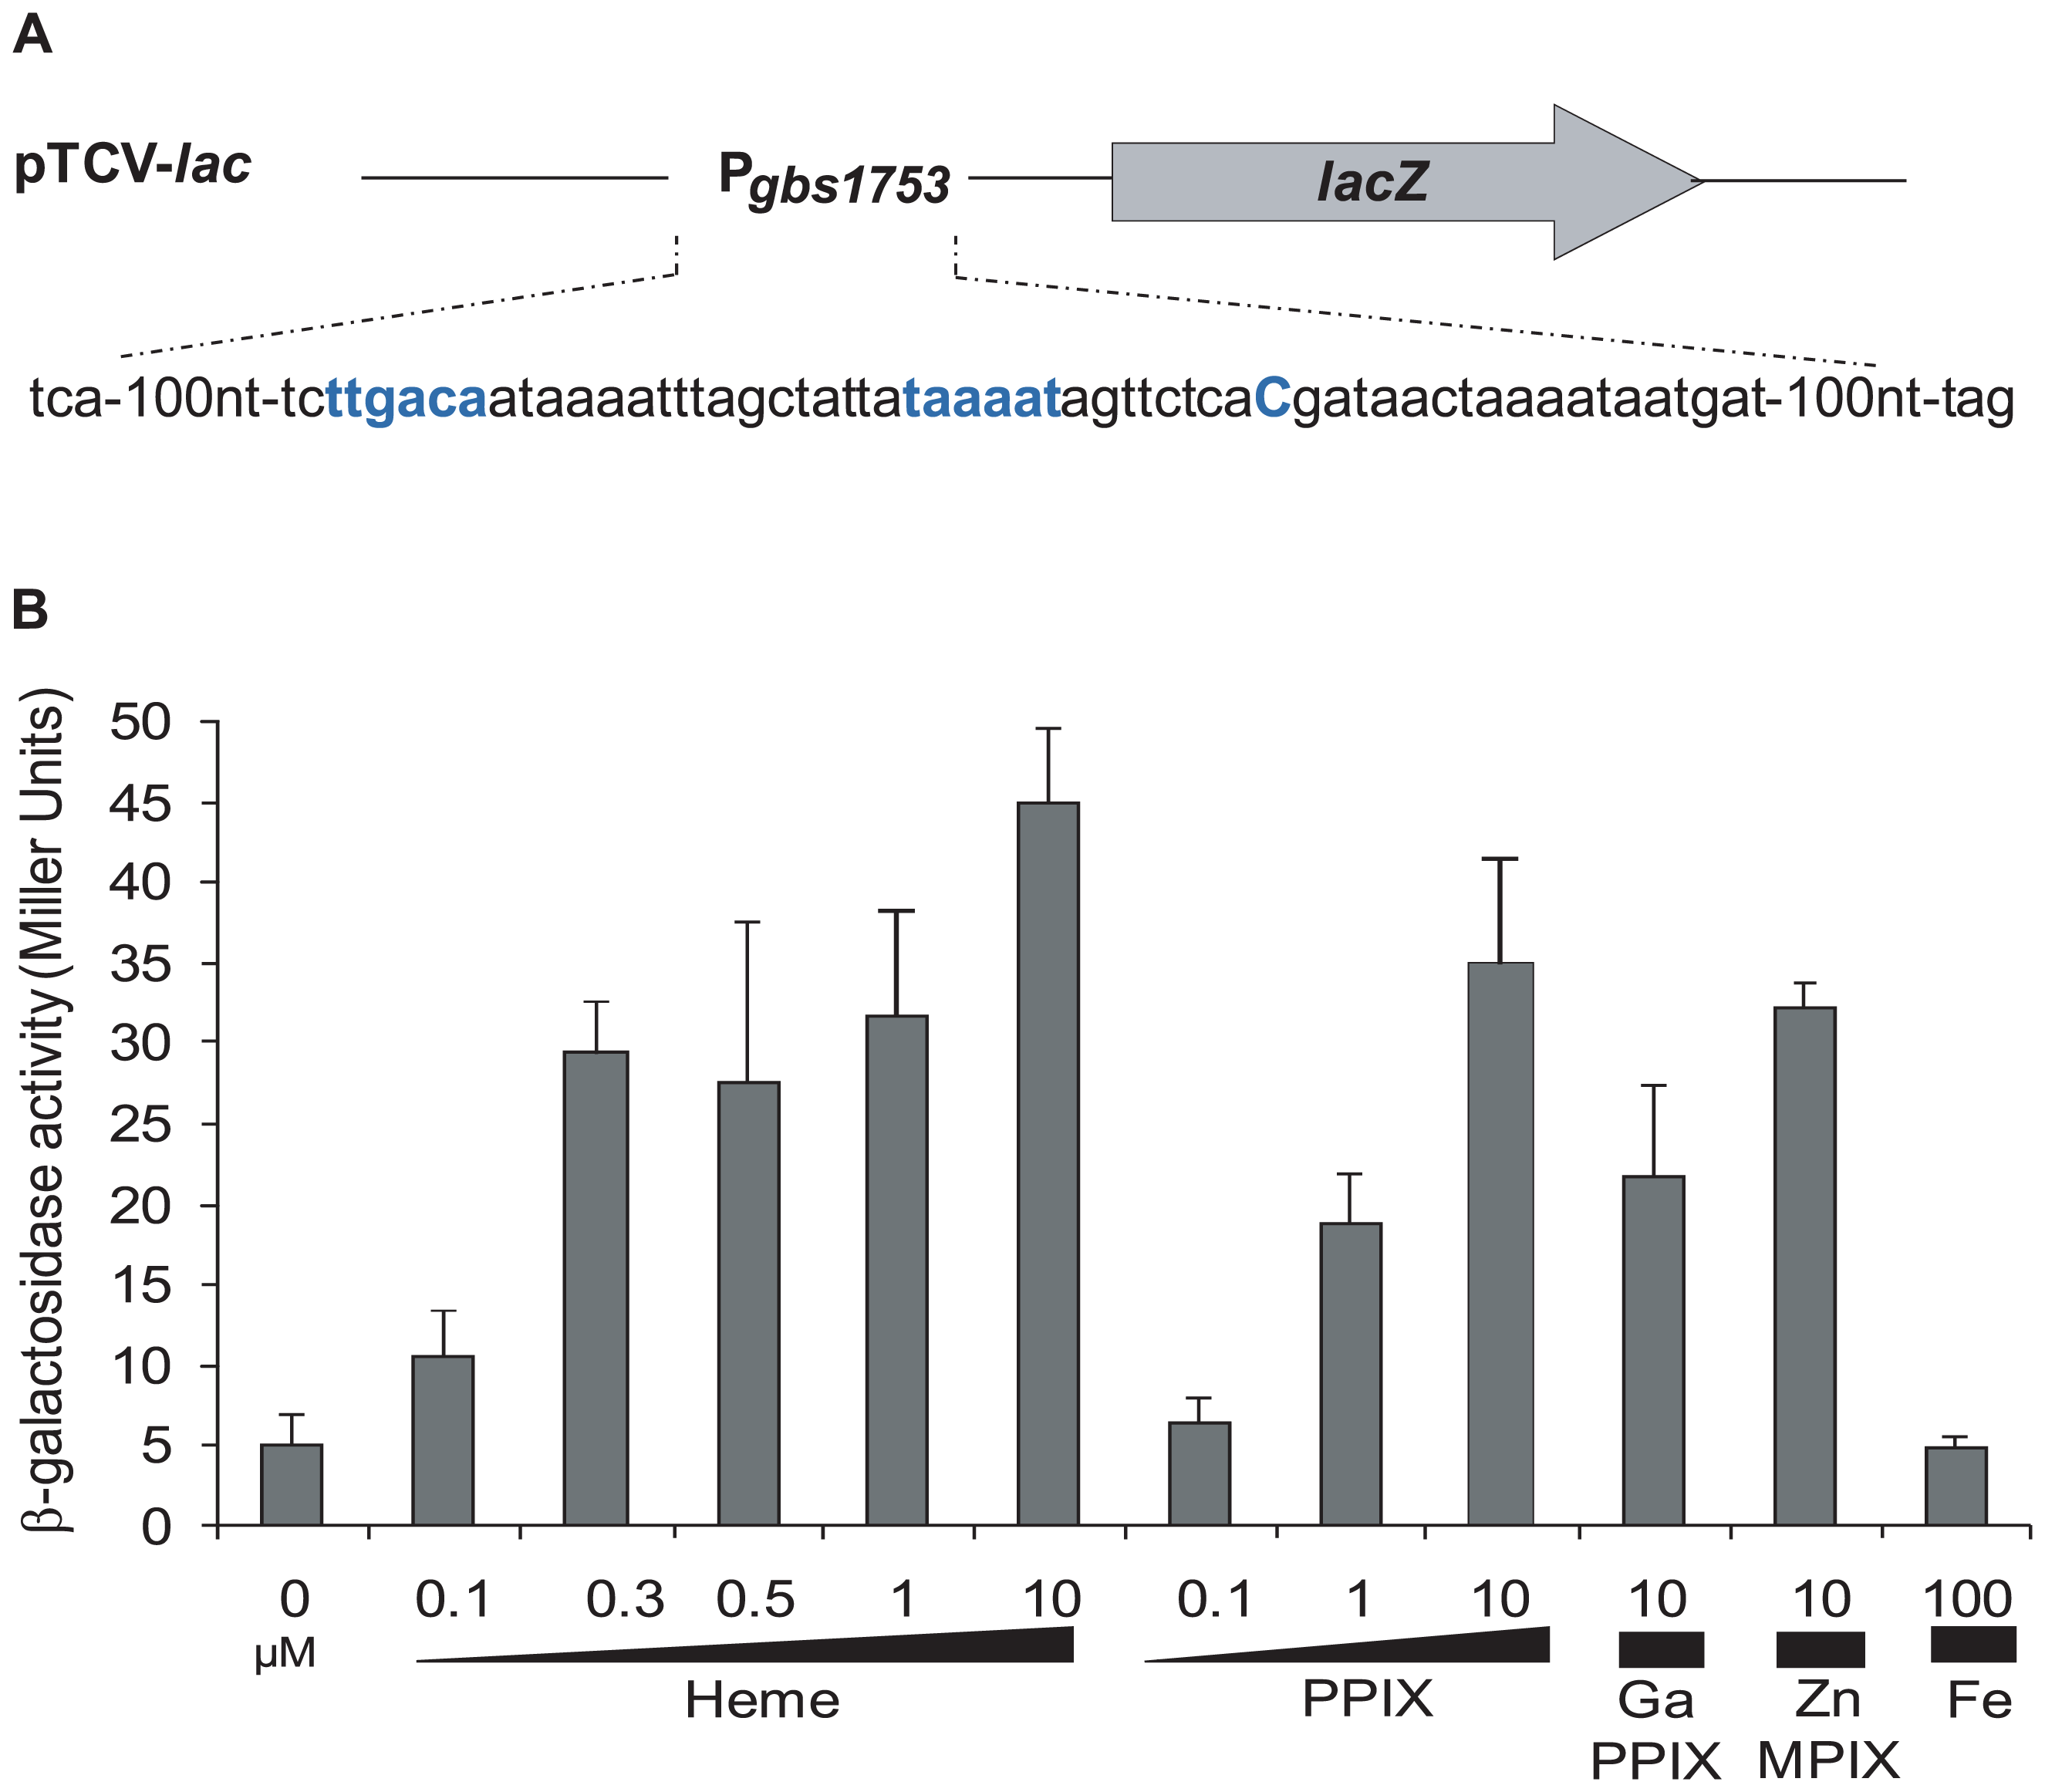 The <i>pefAB</i> locus is induced by porphyrin molecules: heme, PPIX, GaPPIX and ZnMPIX.